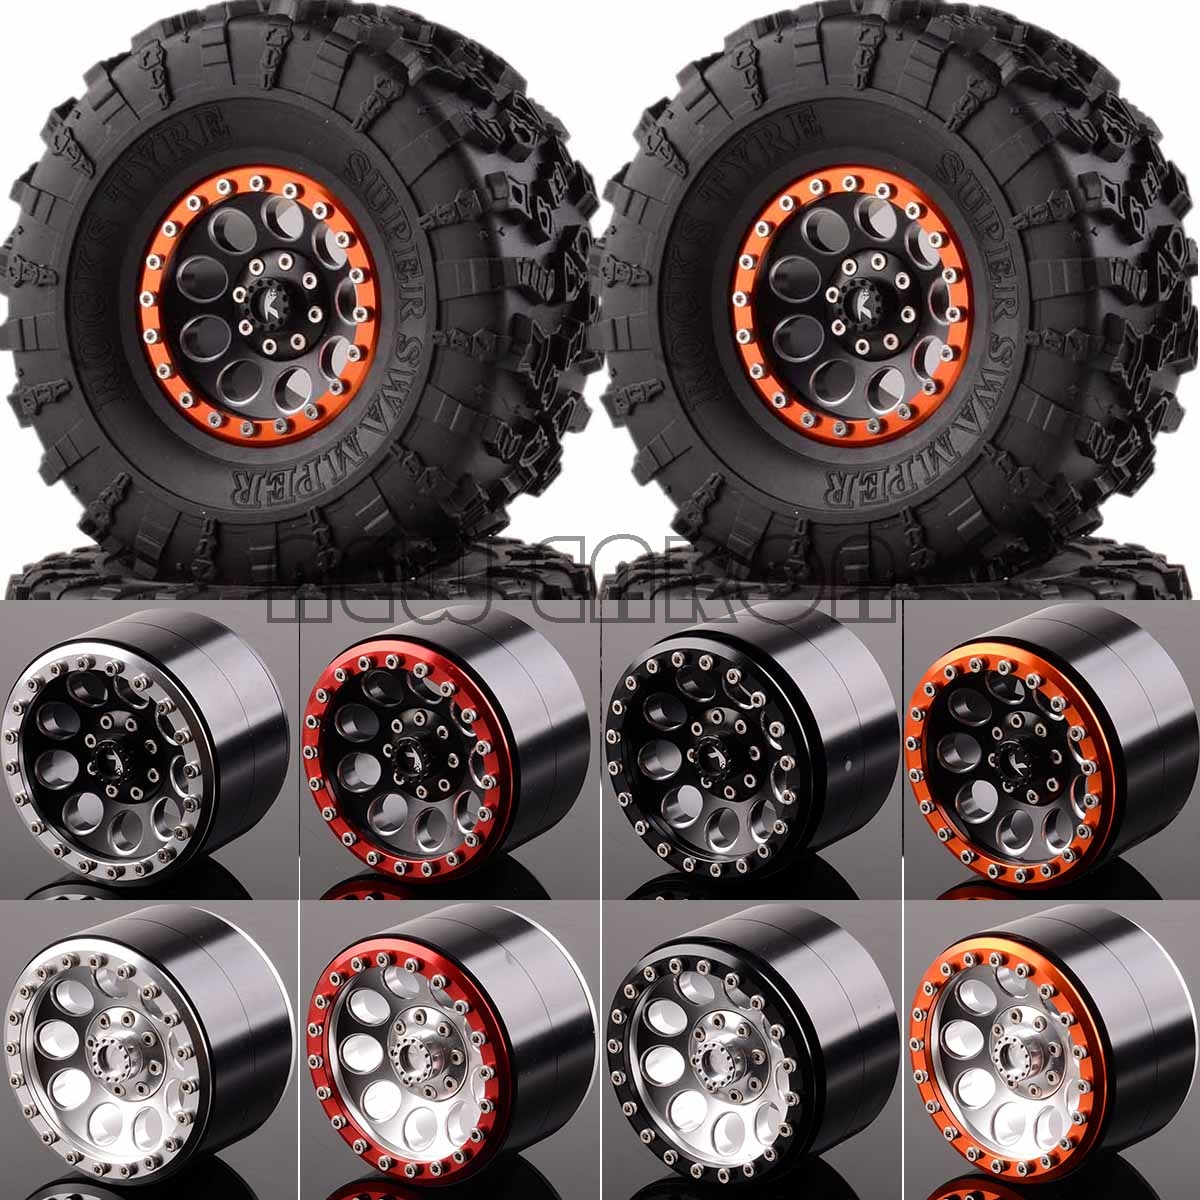 NEW ENRON Aluminum 2.2 Beadlock Wheels & TIRES 2020-3022 FOR Axial Yeti/Wraith RC Crawler hot racing heat sink motor mount for axial yeti xl 90032 90038 new